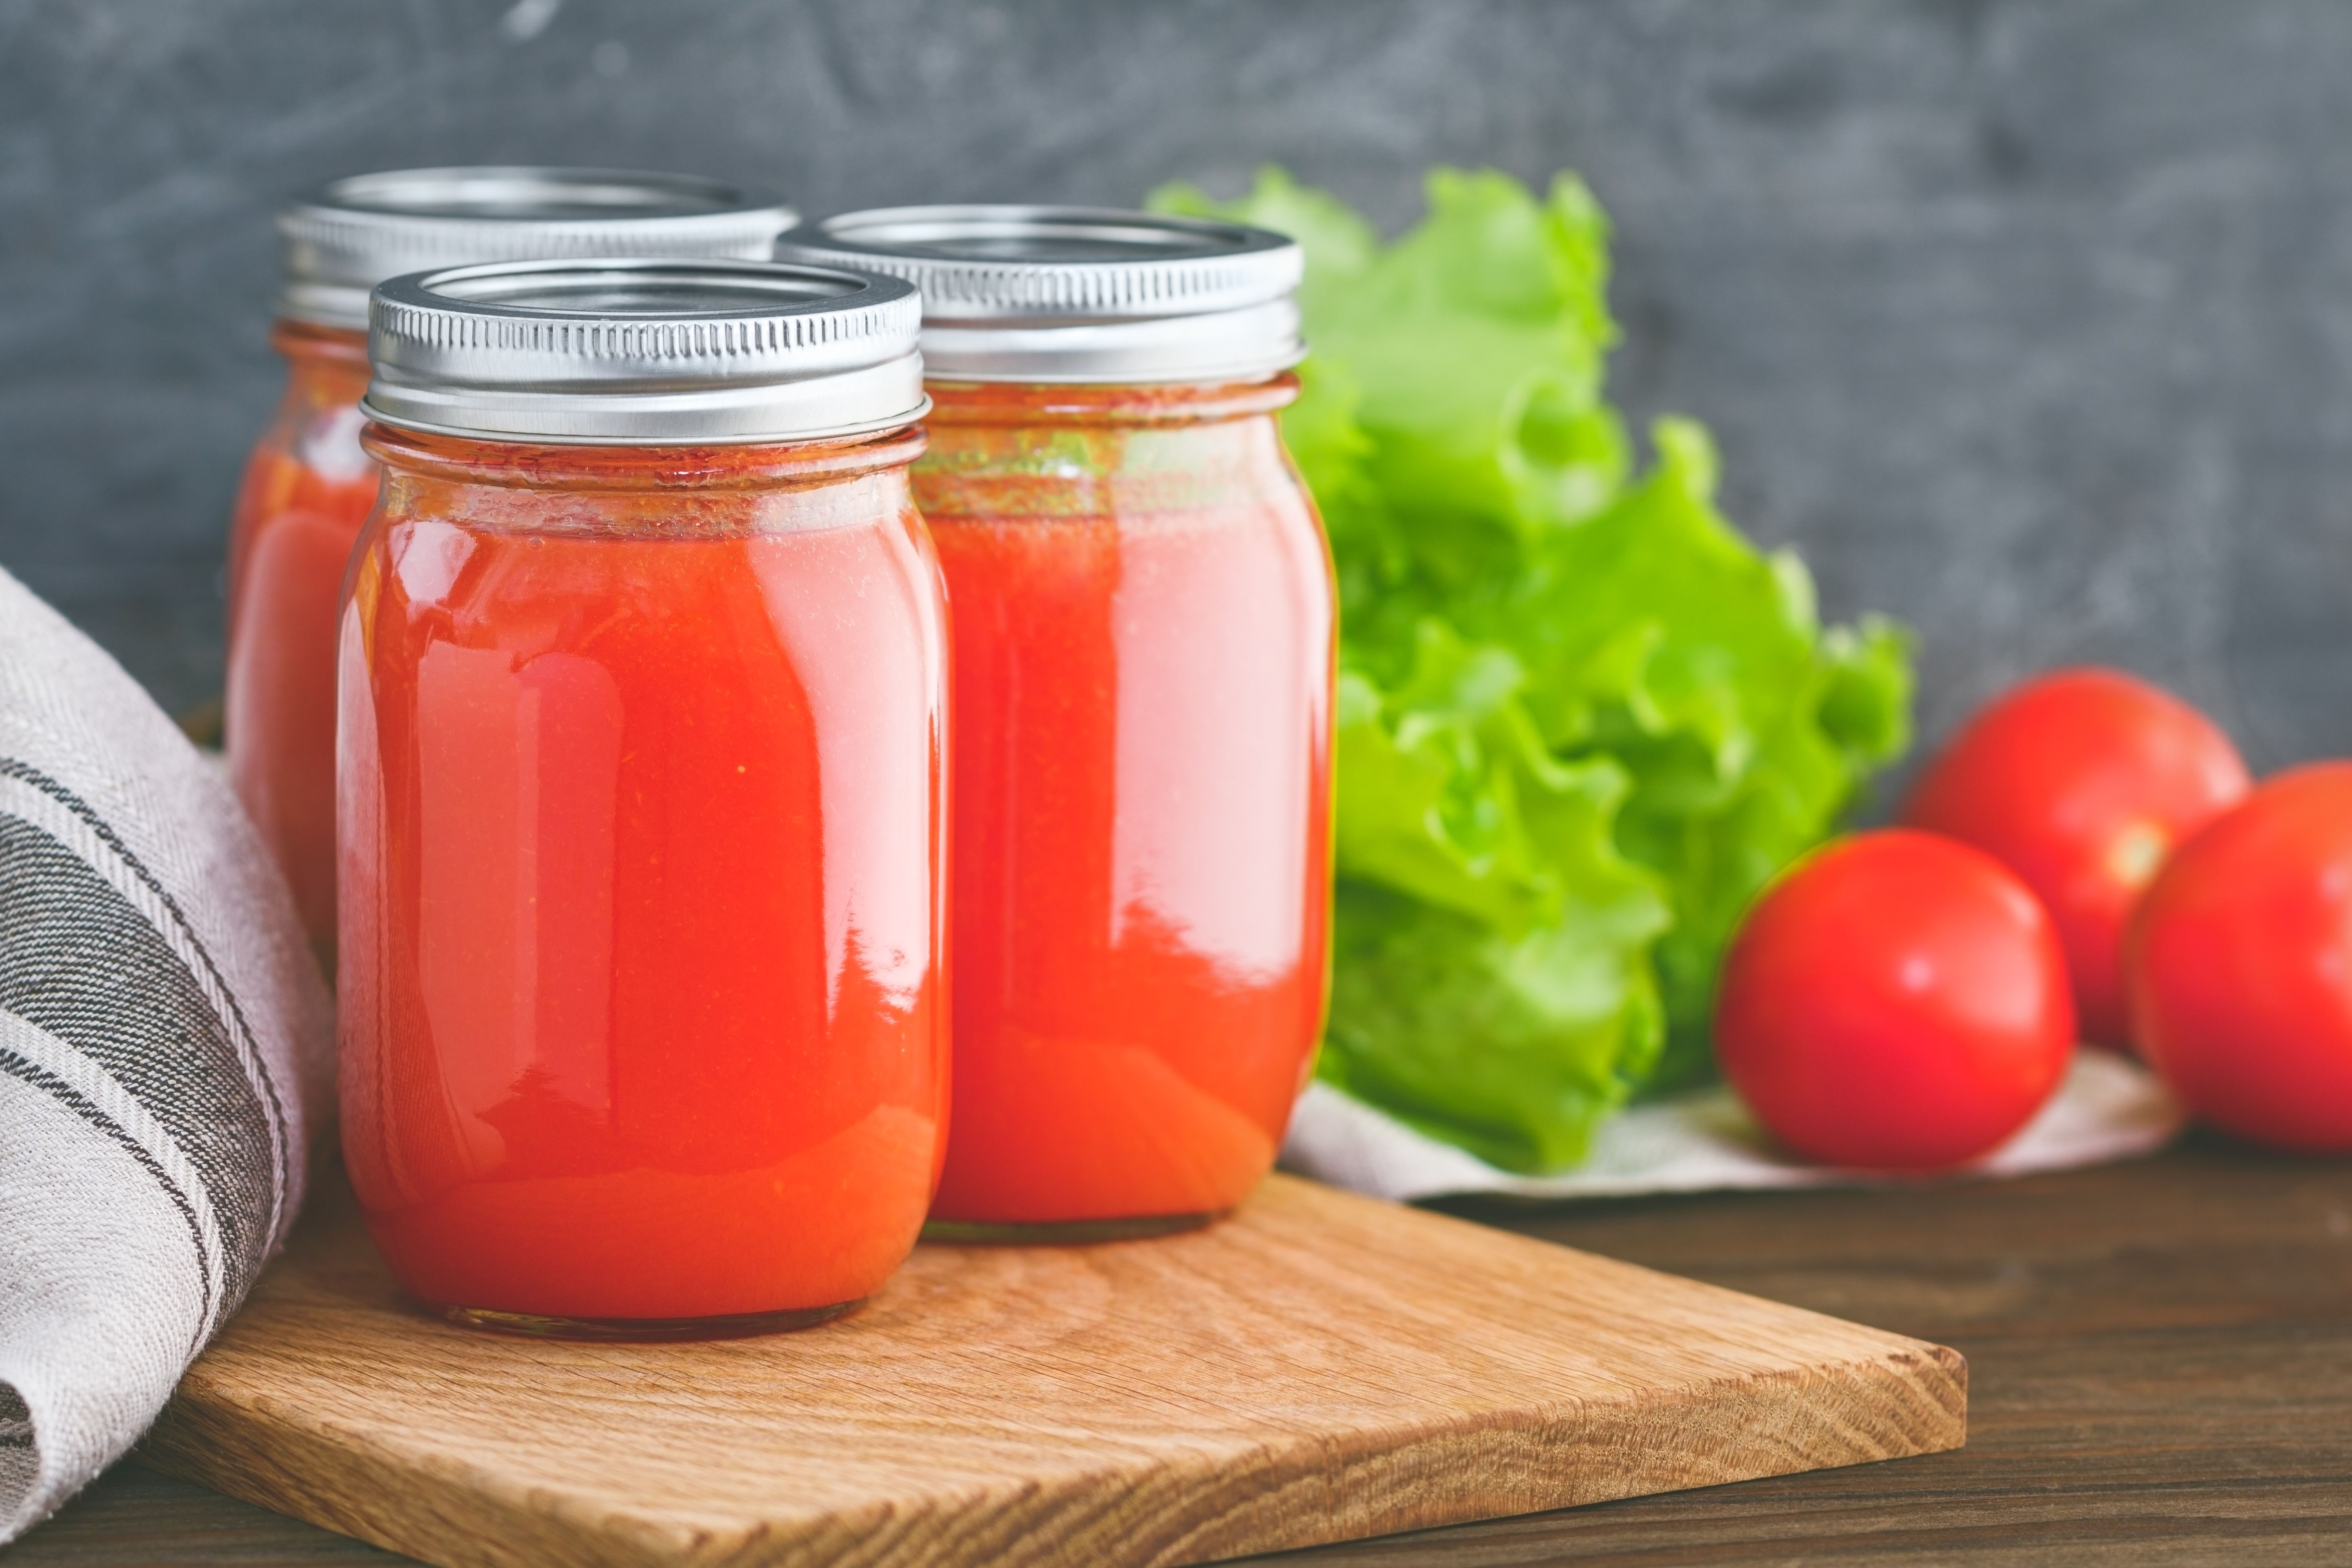 Homemade Tomato Puree Recipe And Canning Tips